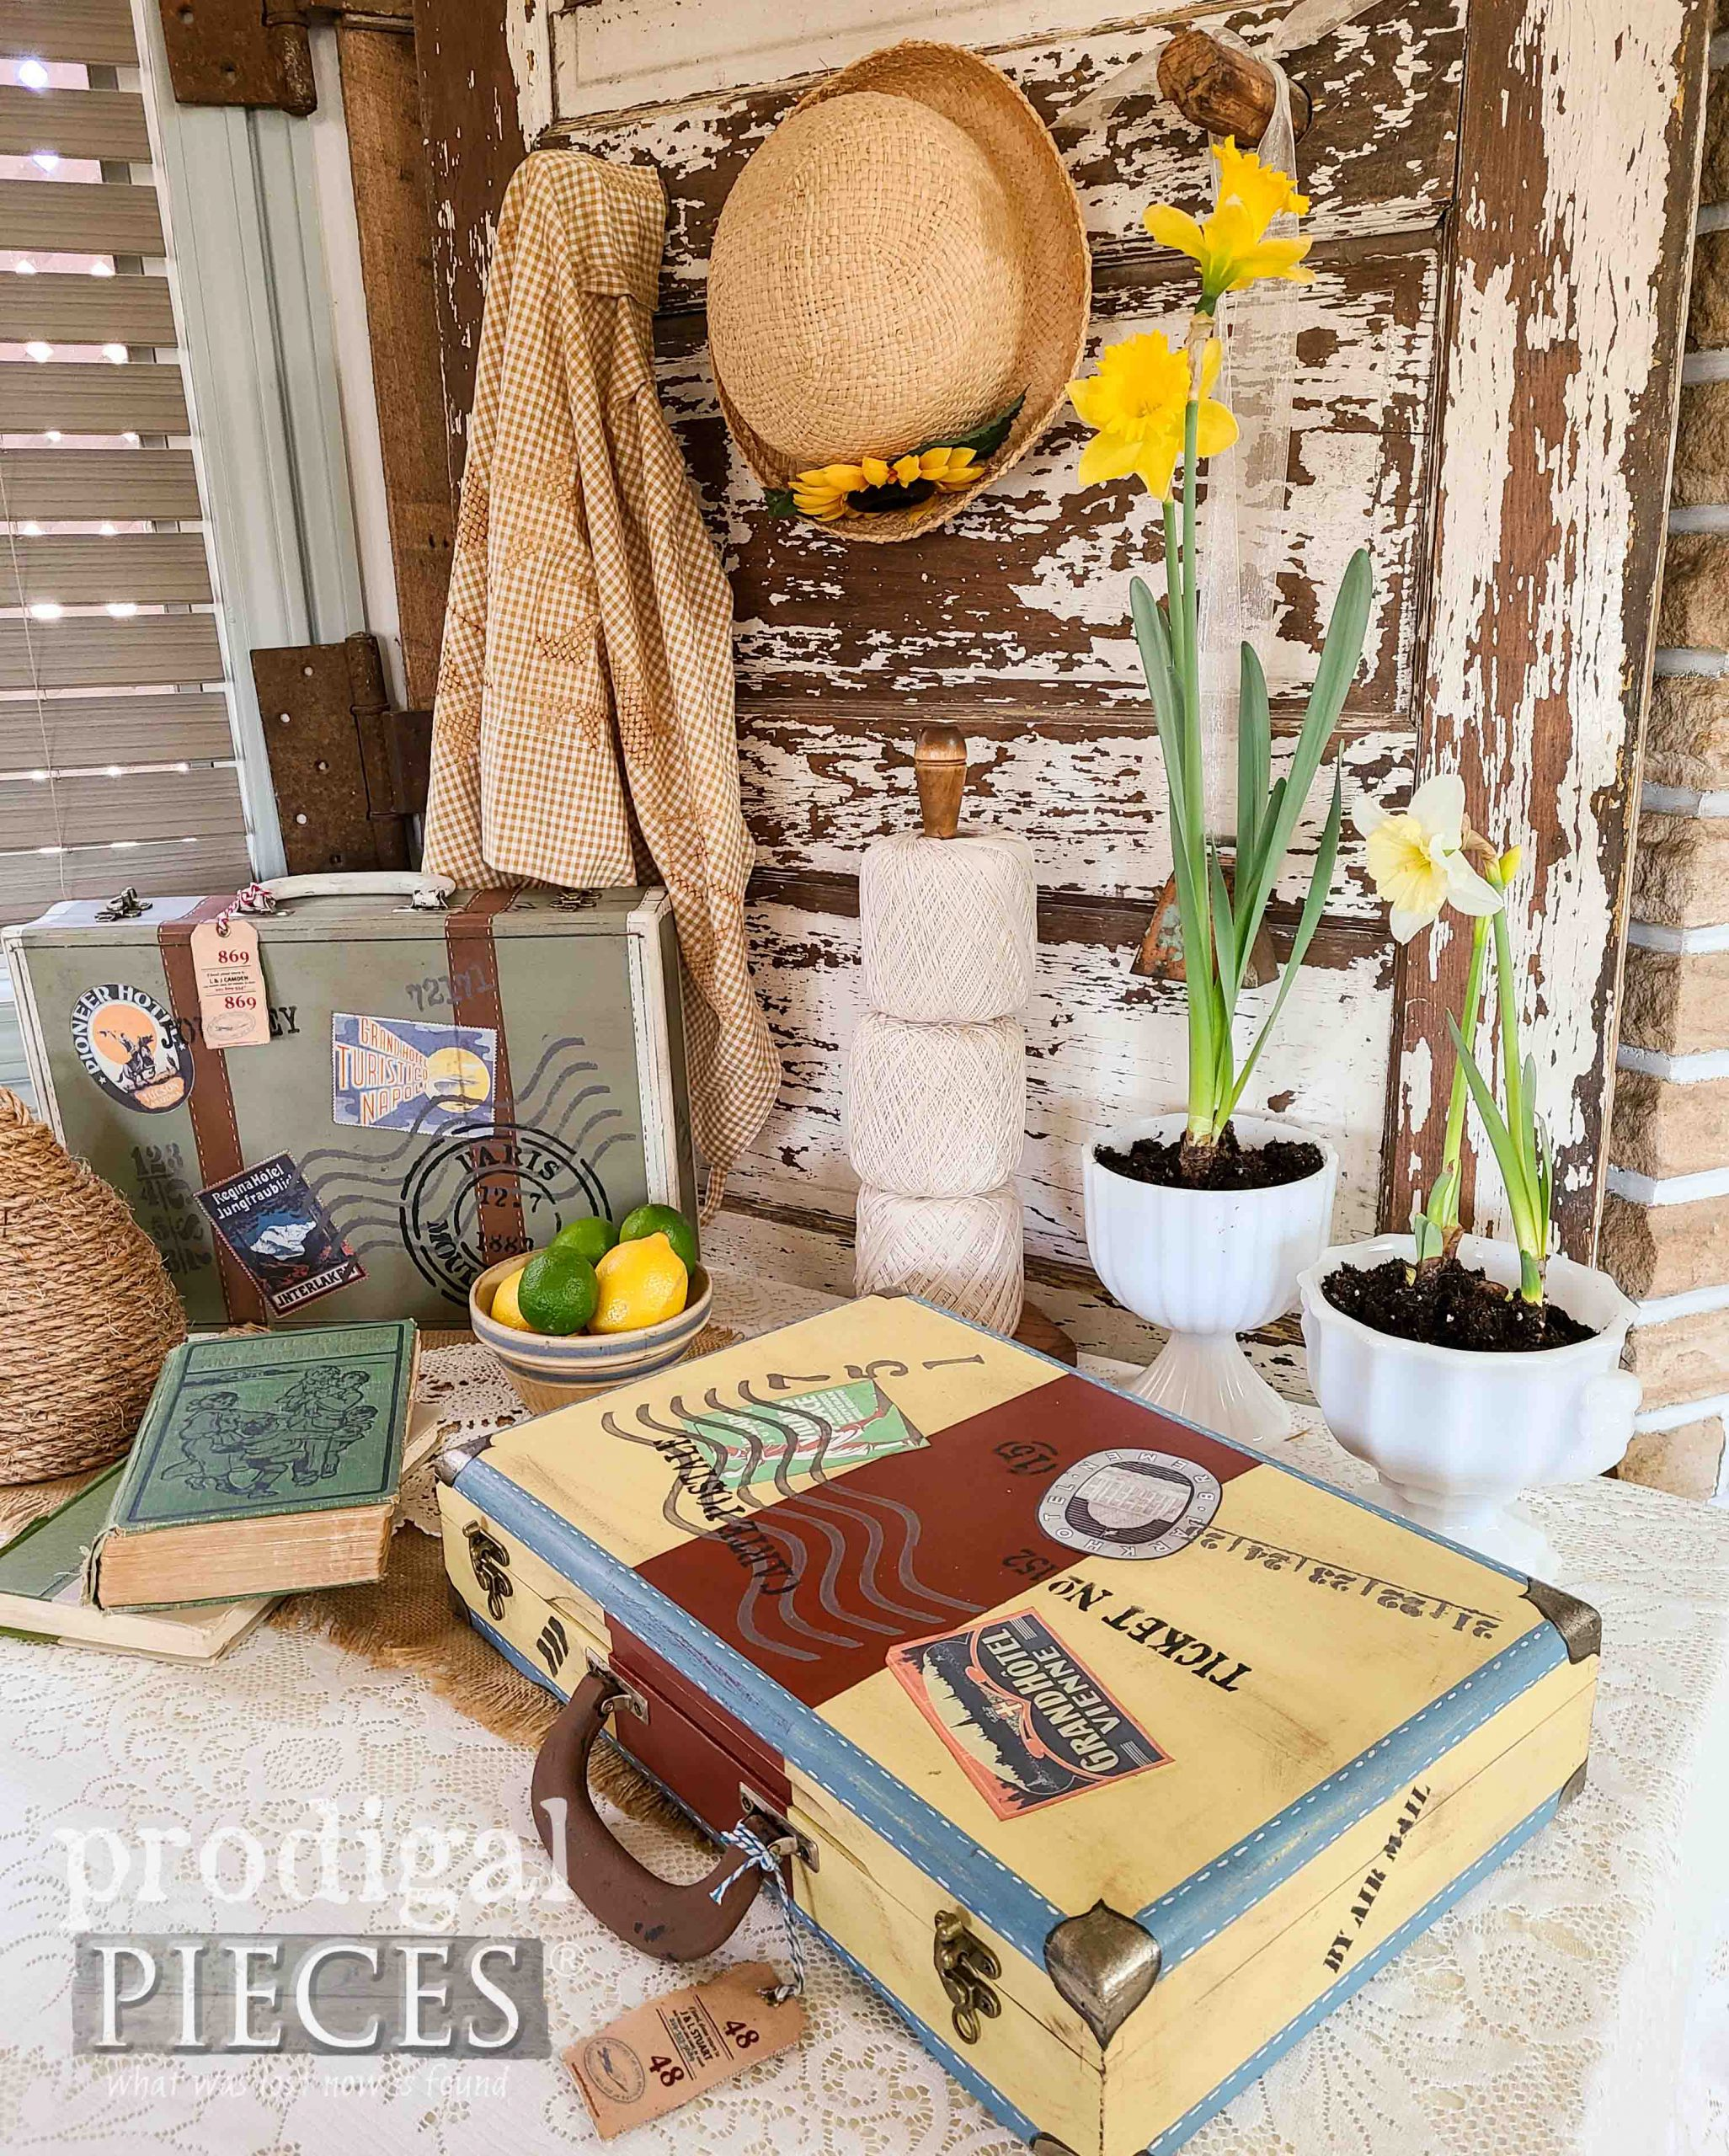 Vintage Style Spring Decor by Larissa of Prodigal Pieces | prodigalpieces.com #prodigalpieces #upcycled #diy #home #homedecor